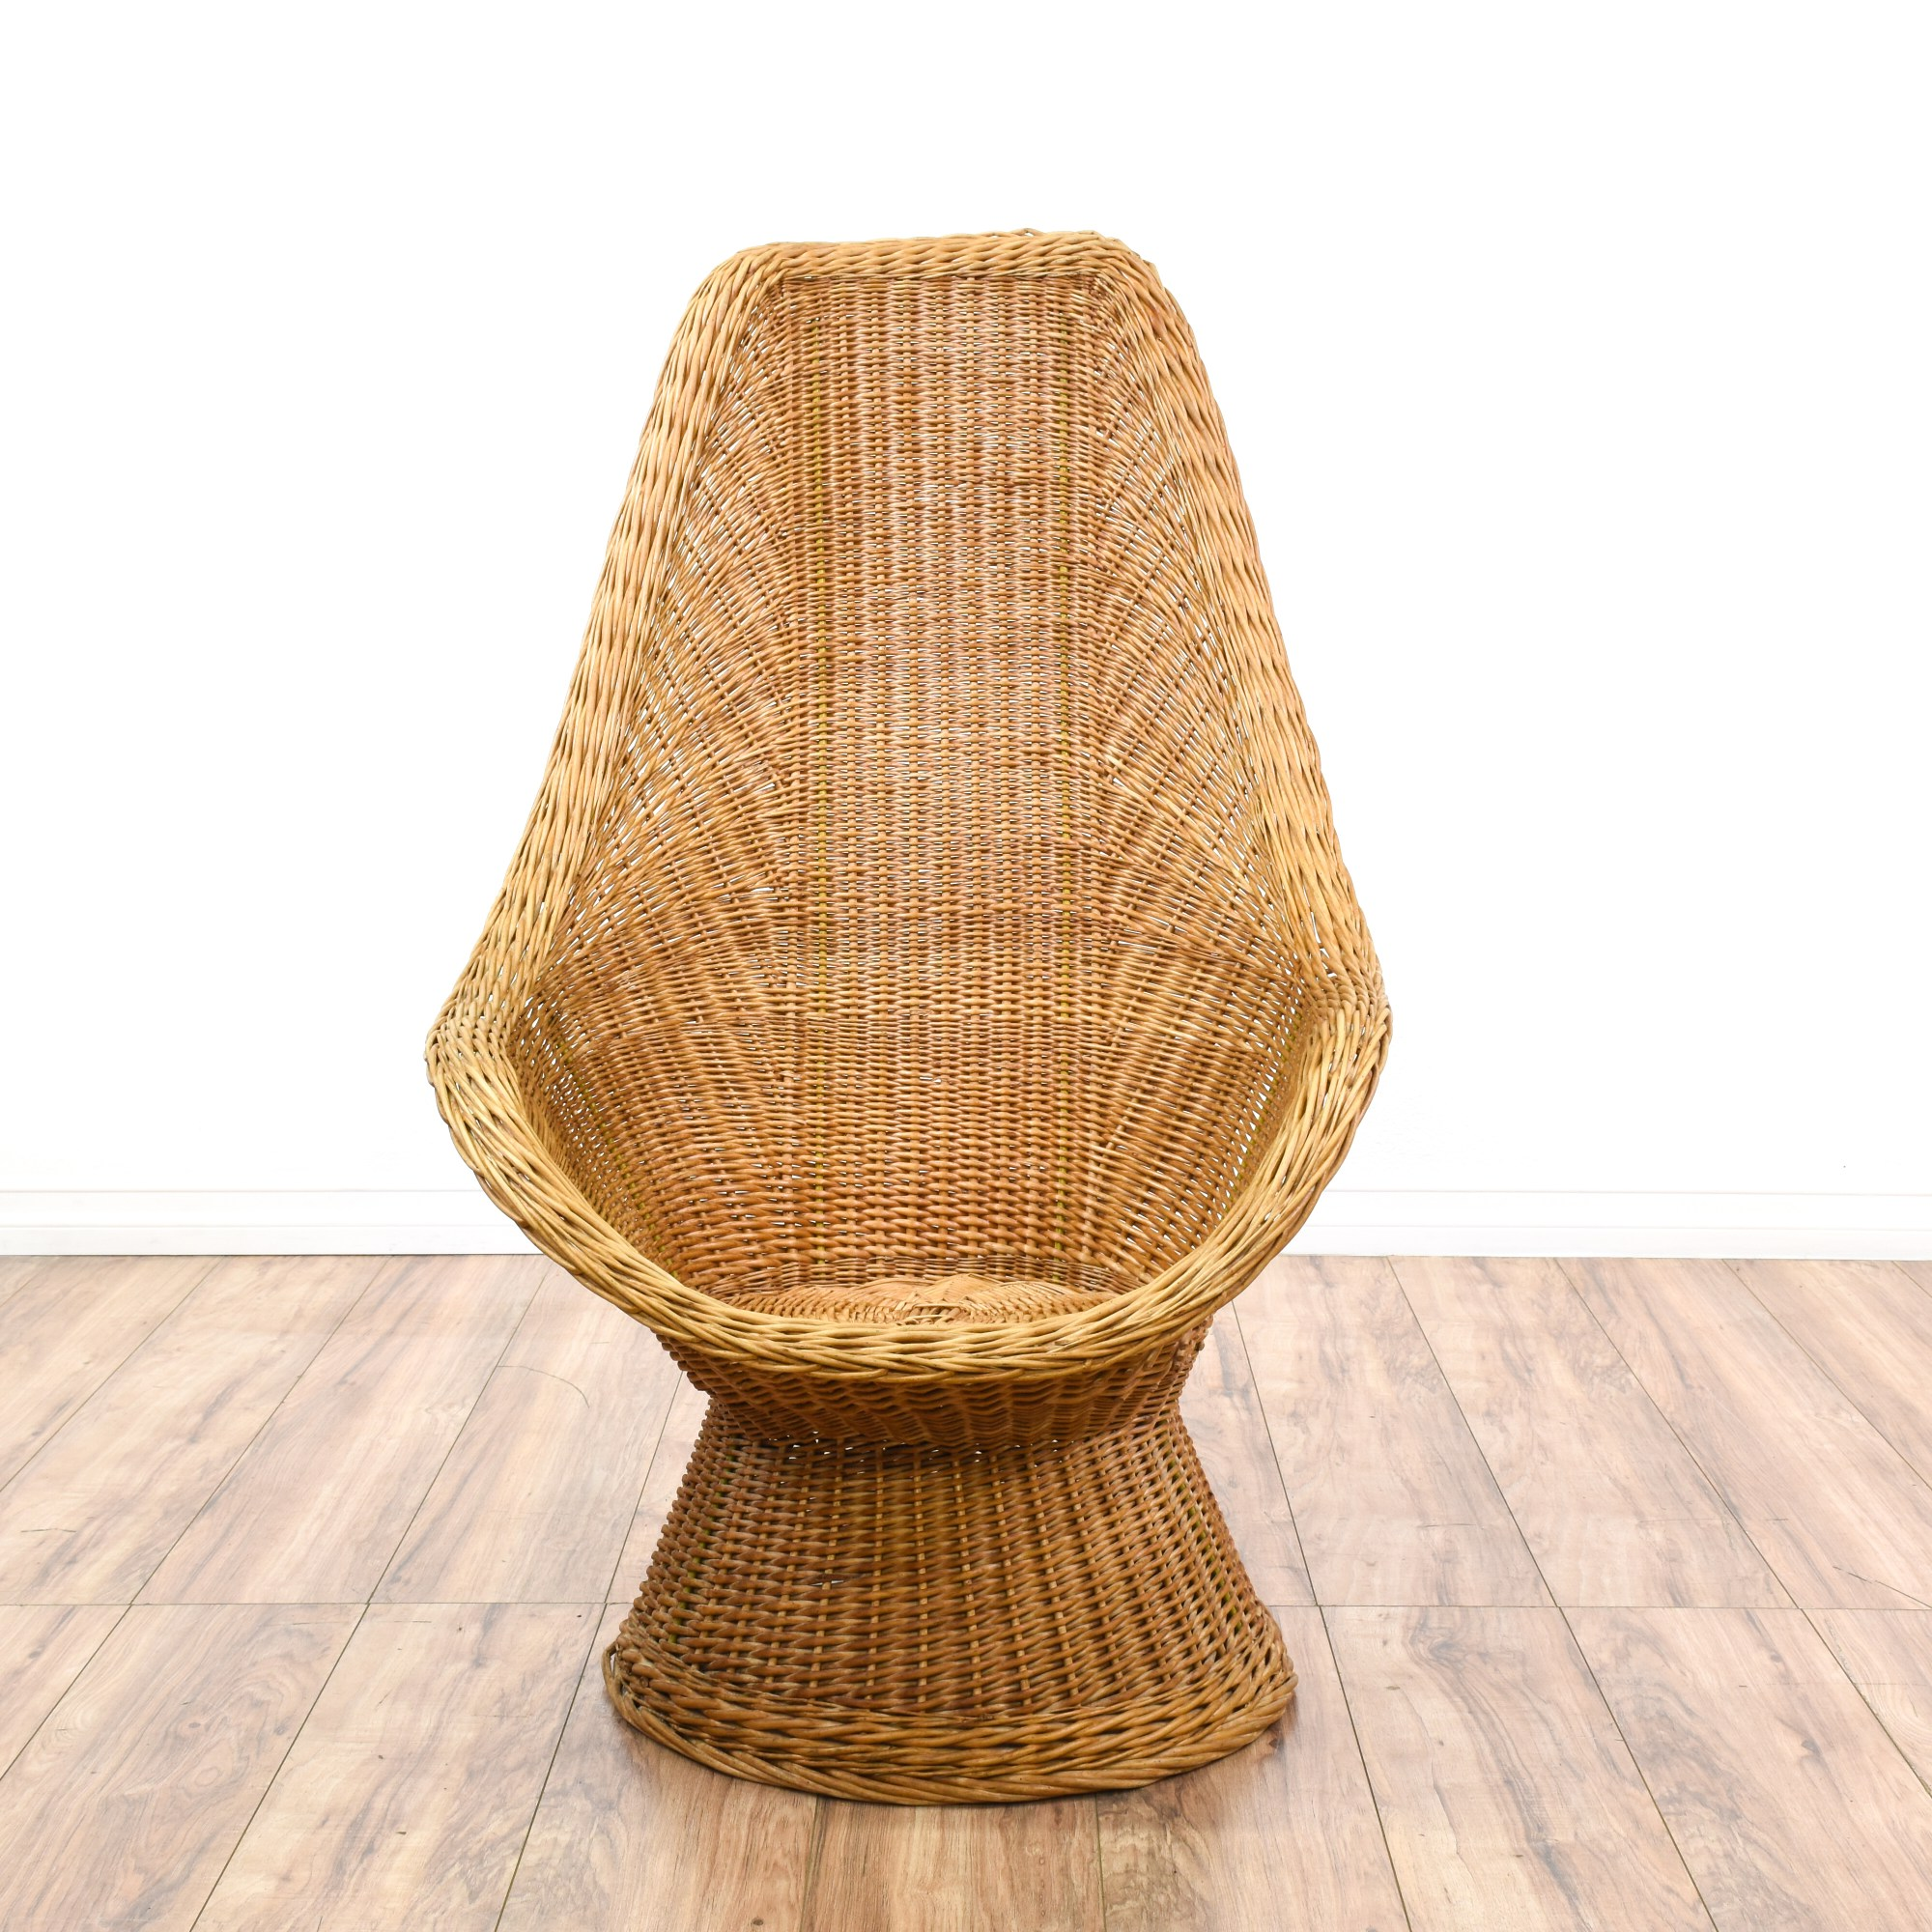 Rattan Egg Chairs Curved Rattan Woven Egg Chair Loveseat Vintage Furniture